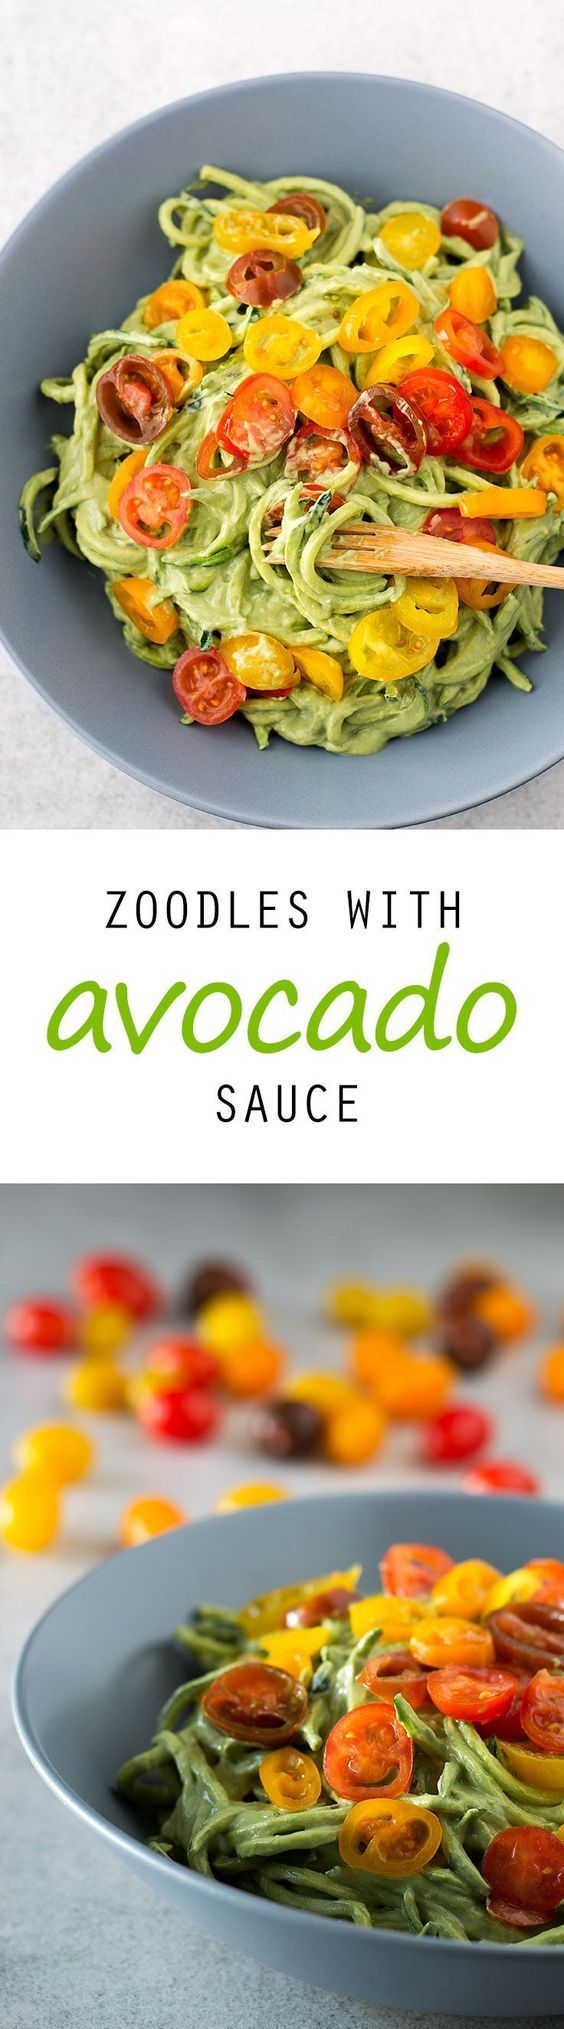 Zucchini Noodles with Avocado SauceZucchini Noodles with Avocado Sauce